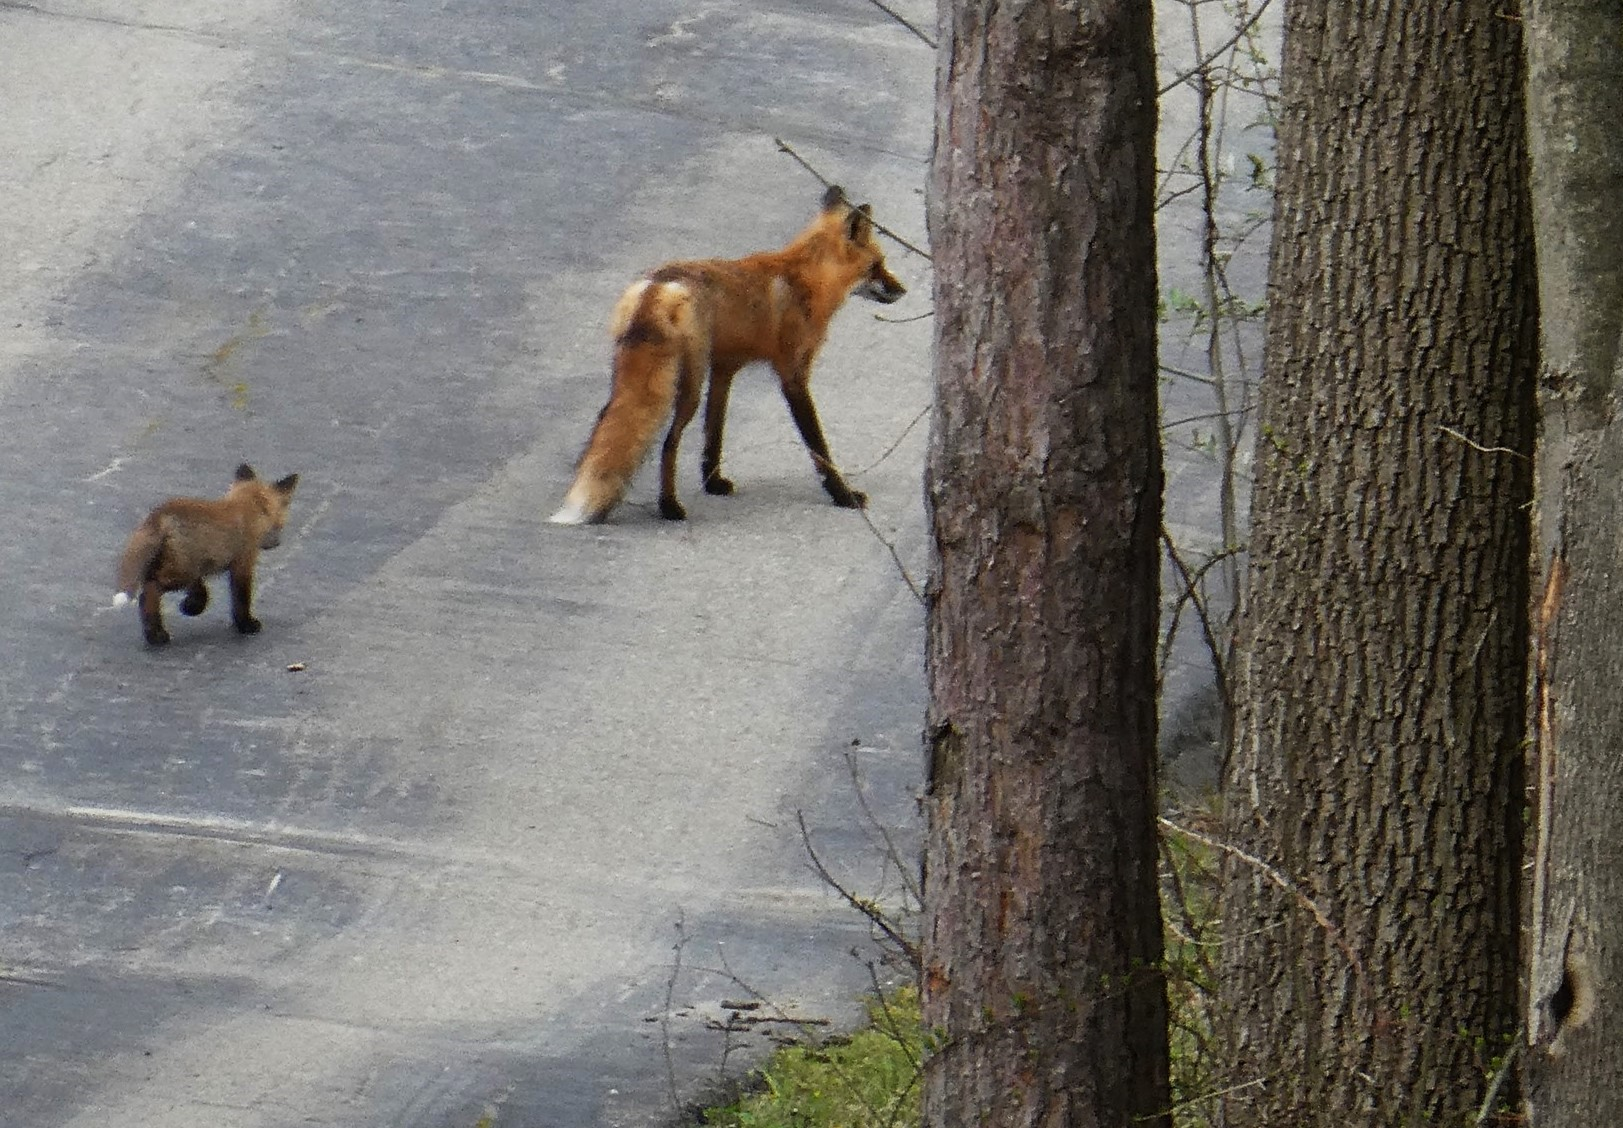 A female red fox walks across a blacktop driveway with her pup following close behind